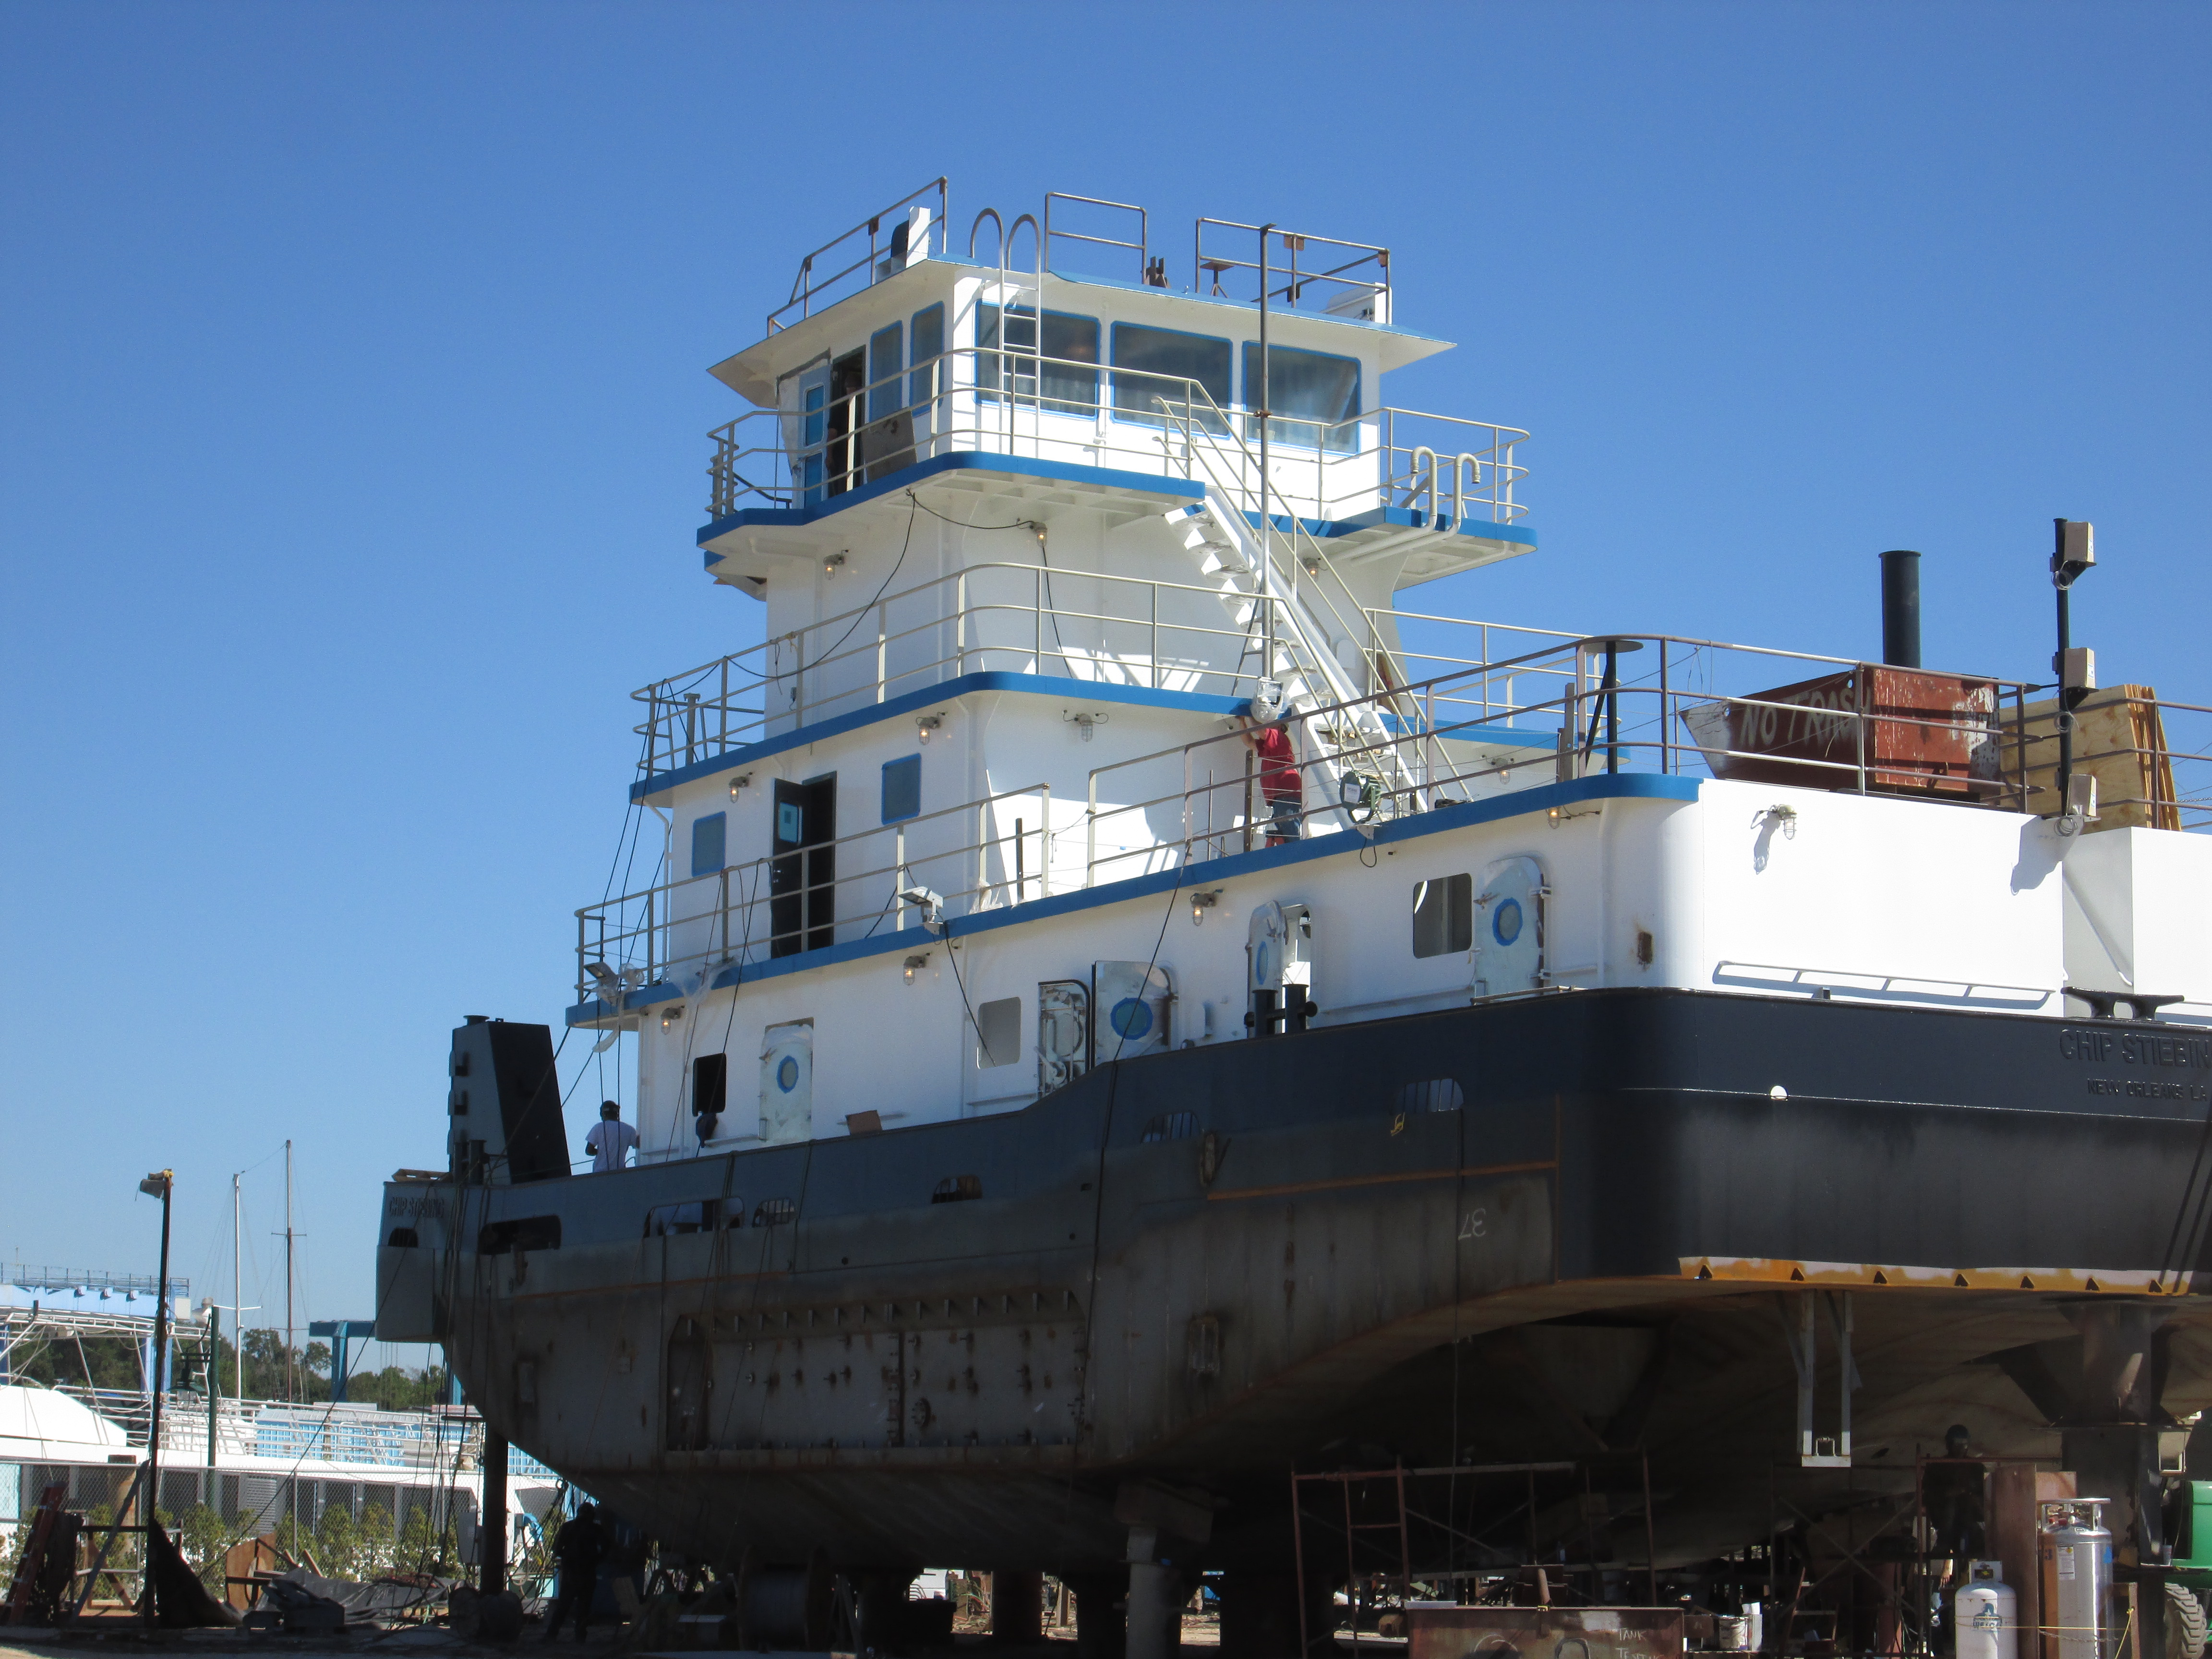 80' River Towboat